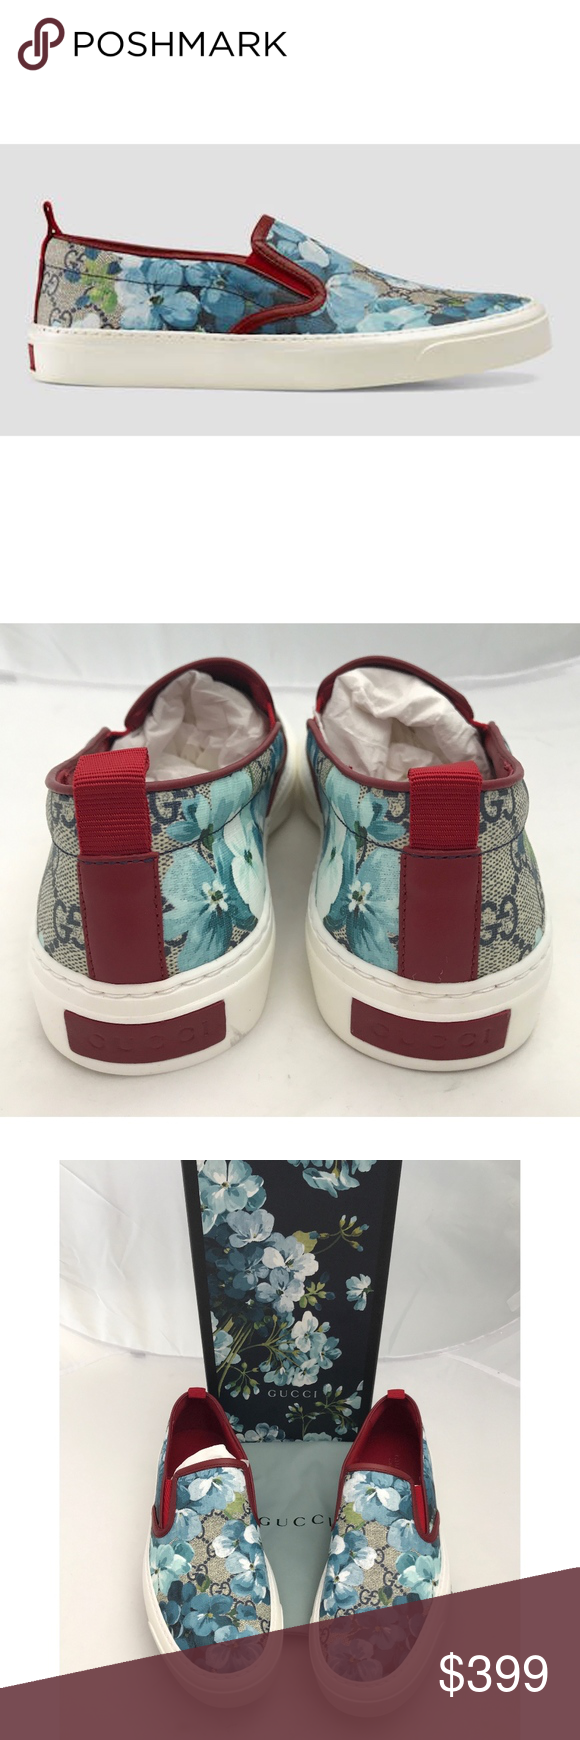 bca1f8a7f New Gucci Bloom GG Sneakers Canvas Blue SZ 40 Authentic Gucci Bloom Sneakers  New with box and dust bag GG supreme canvas with blue floral print Slip on  ...